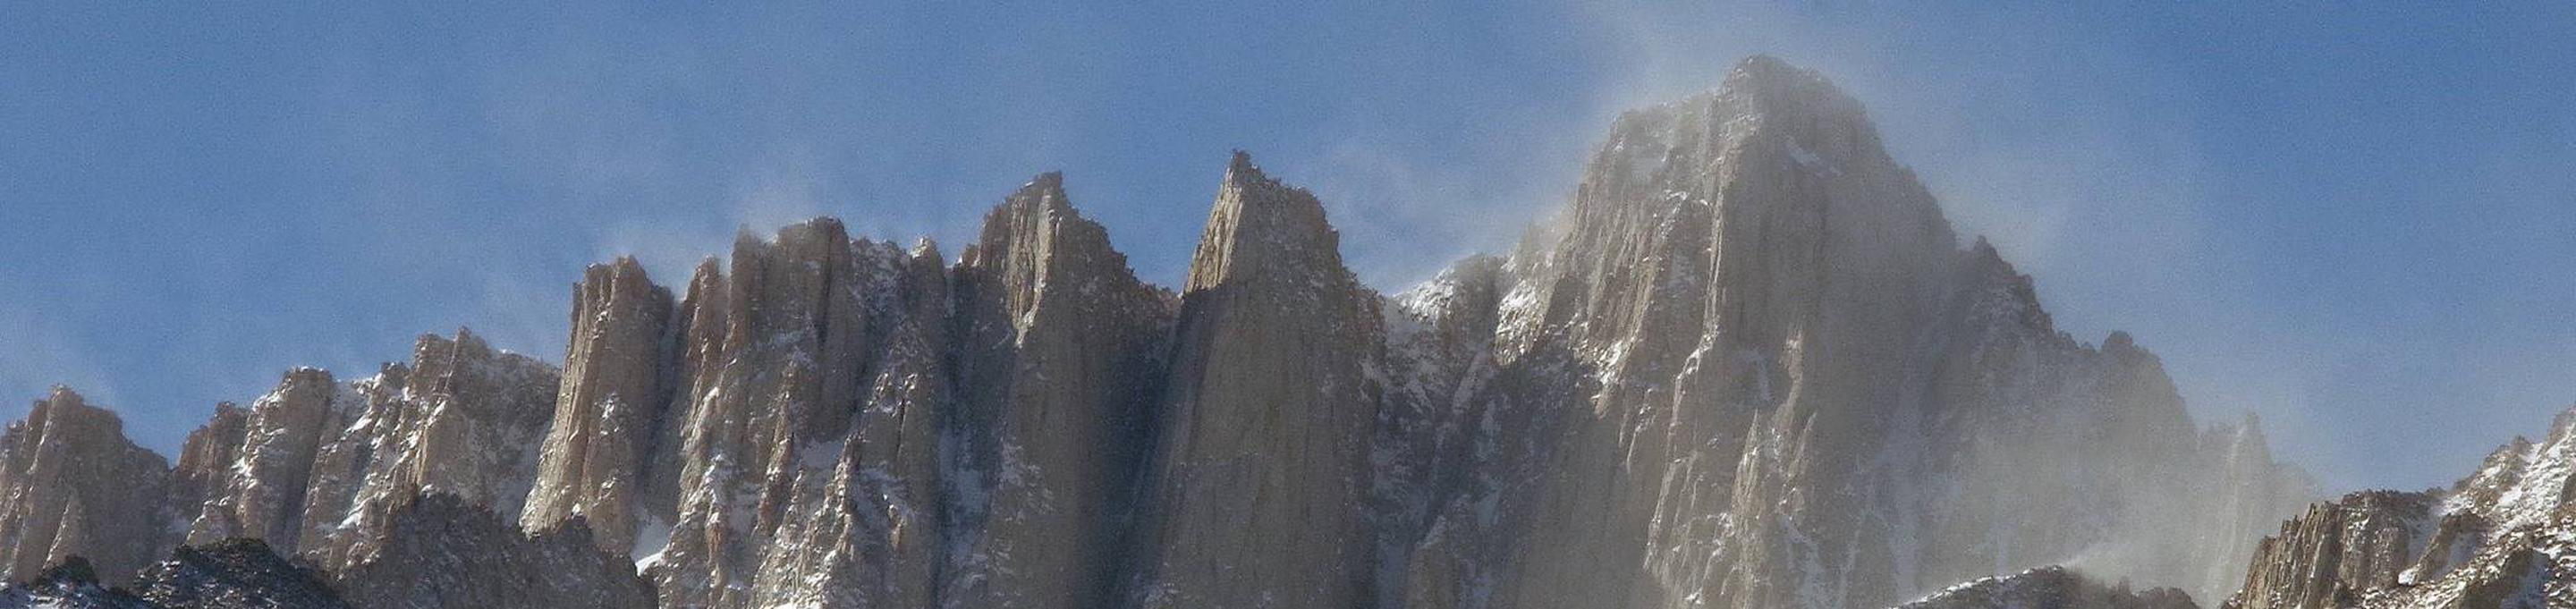 Wind blows snow from the summit of Mount Whitney.The beautiful veil of snow blowing from the summit also indicates the extreme conditions that may be encountered on Mount Whitney.